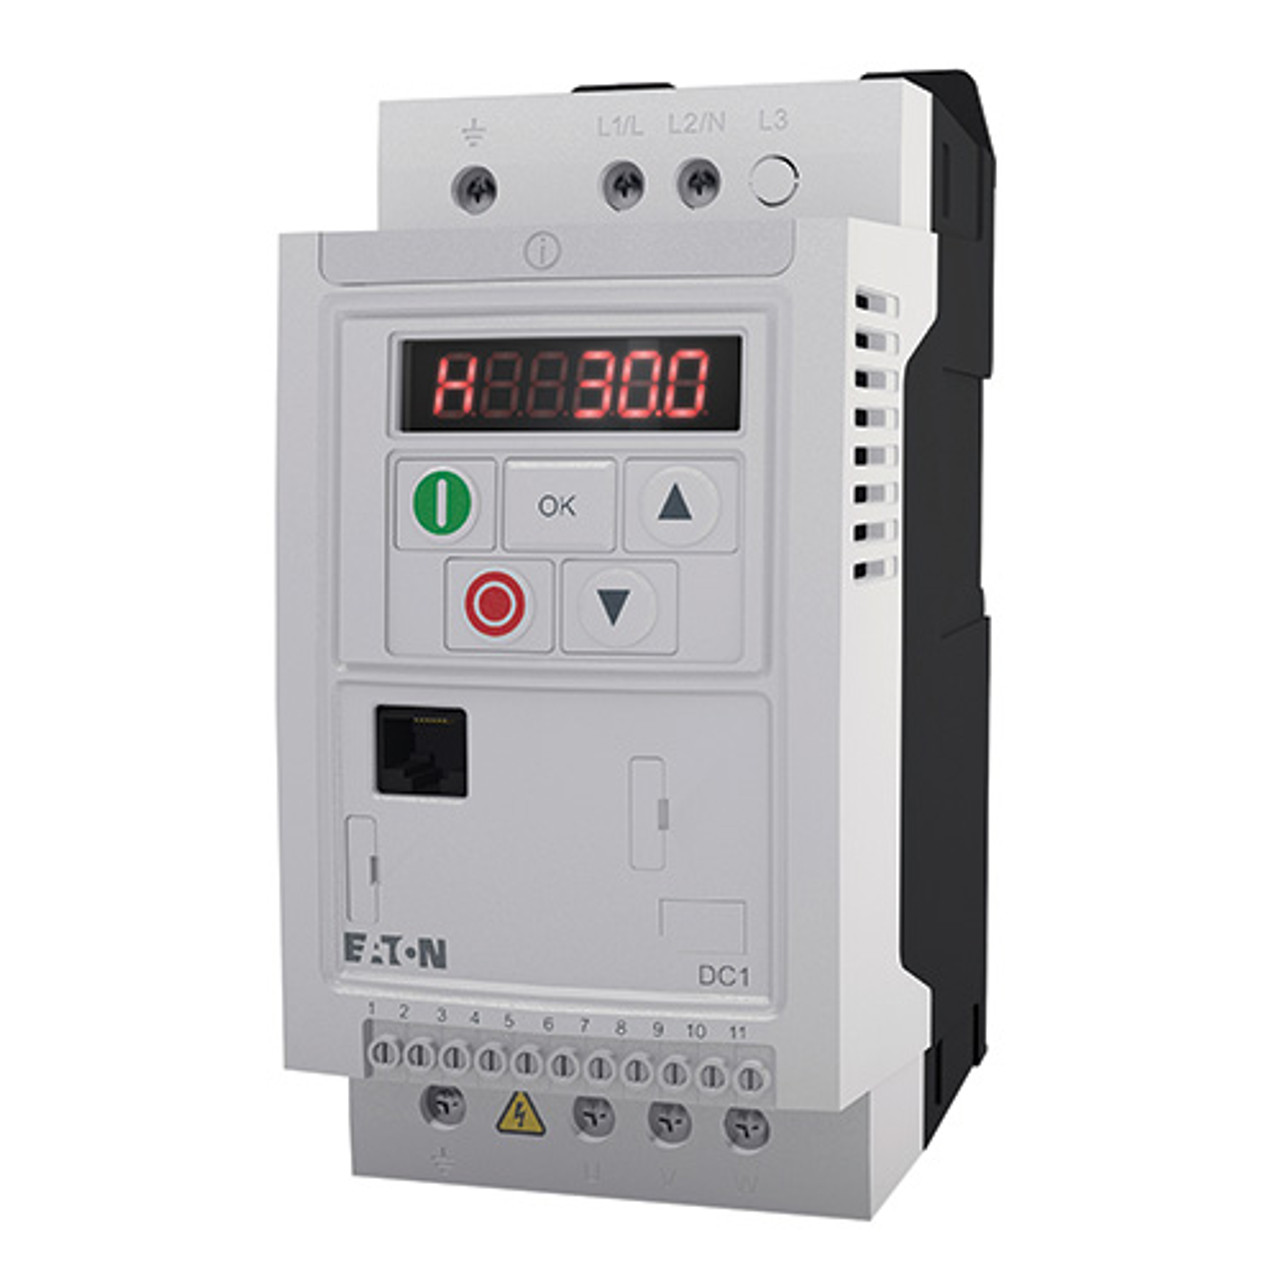 3HP 230V 1PH In / 230 3PH Out, IP20 DC1 VFD